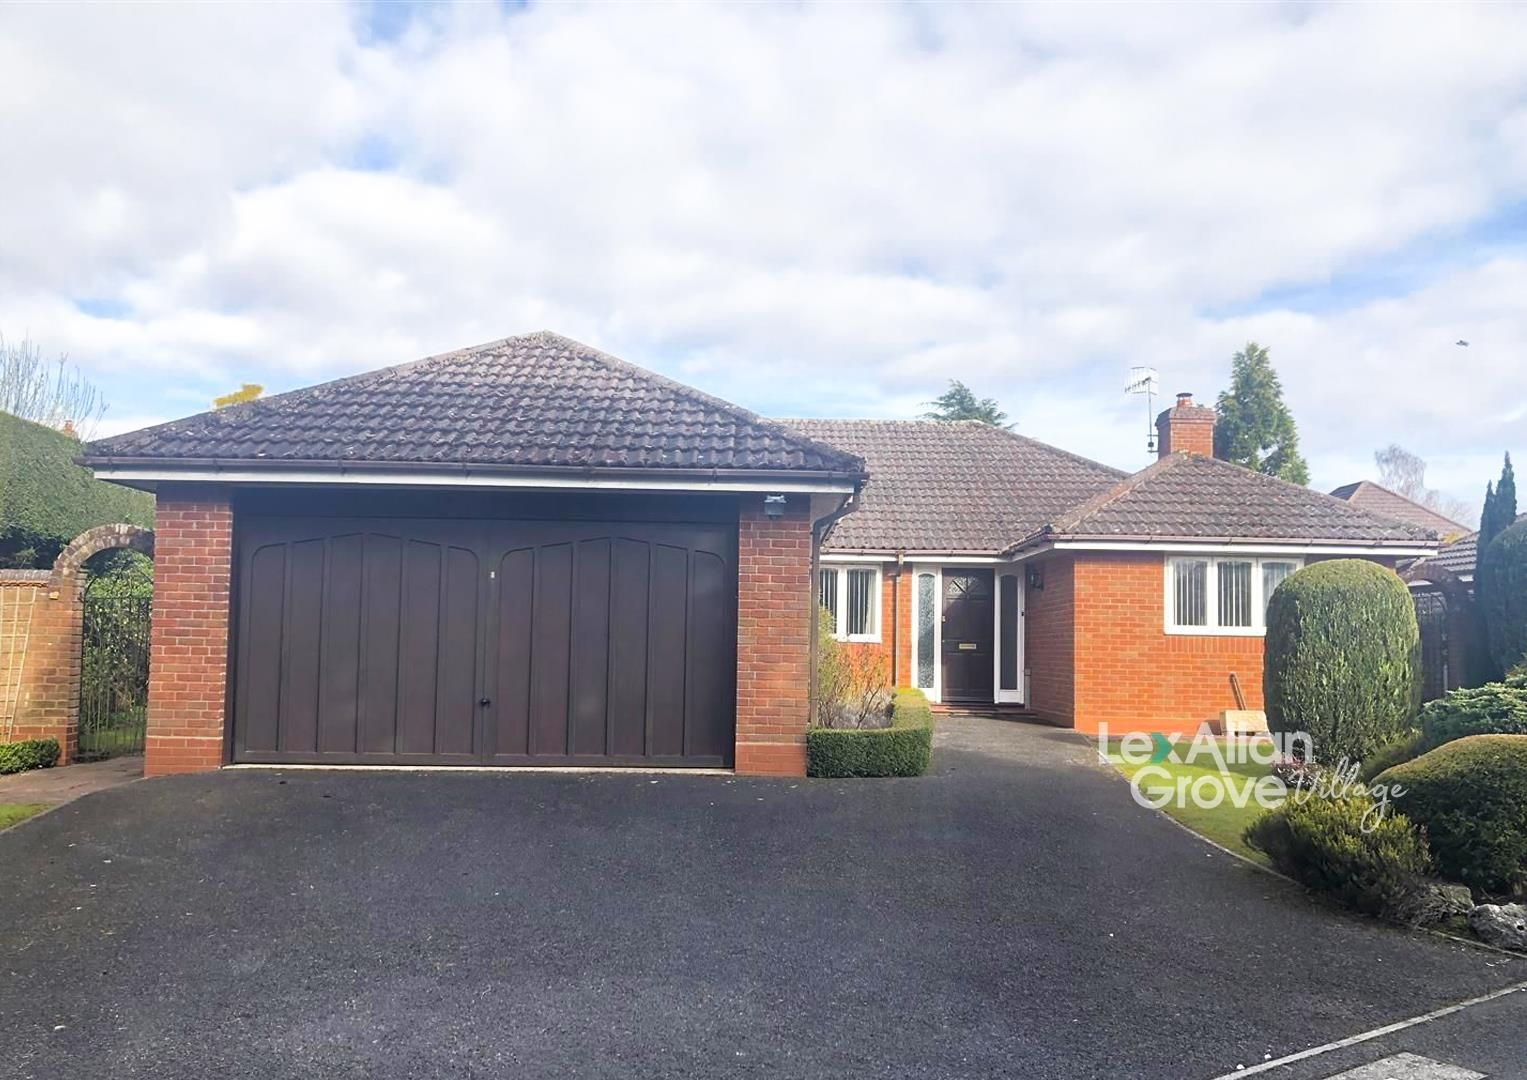 3 bed detached-bungalow for sale in Hagley, DY9